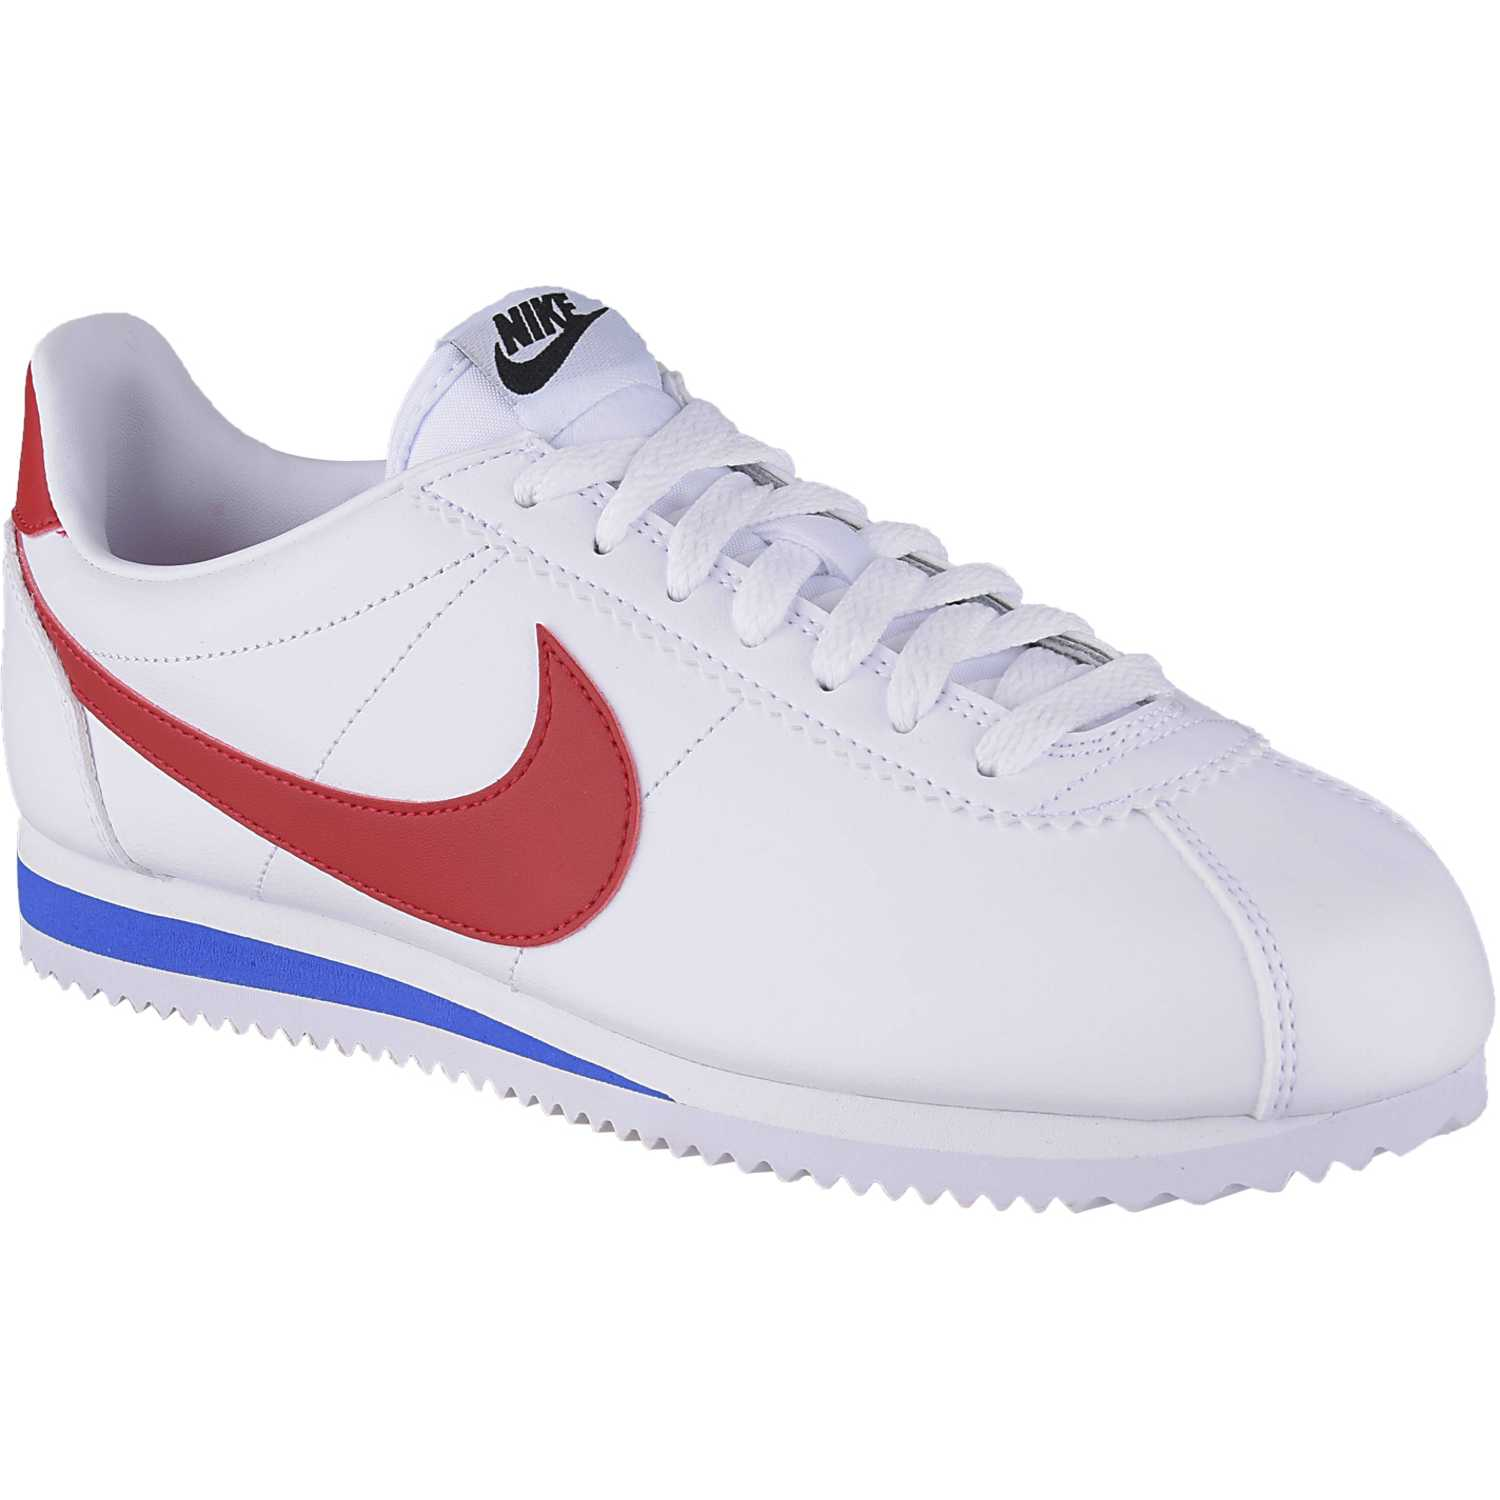 Nike WMNS CLASSIC CORTEZ LEATHER Blanco / rojo Walking